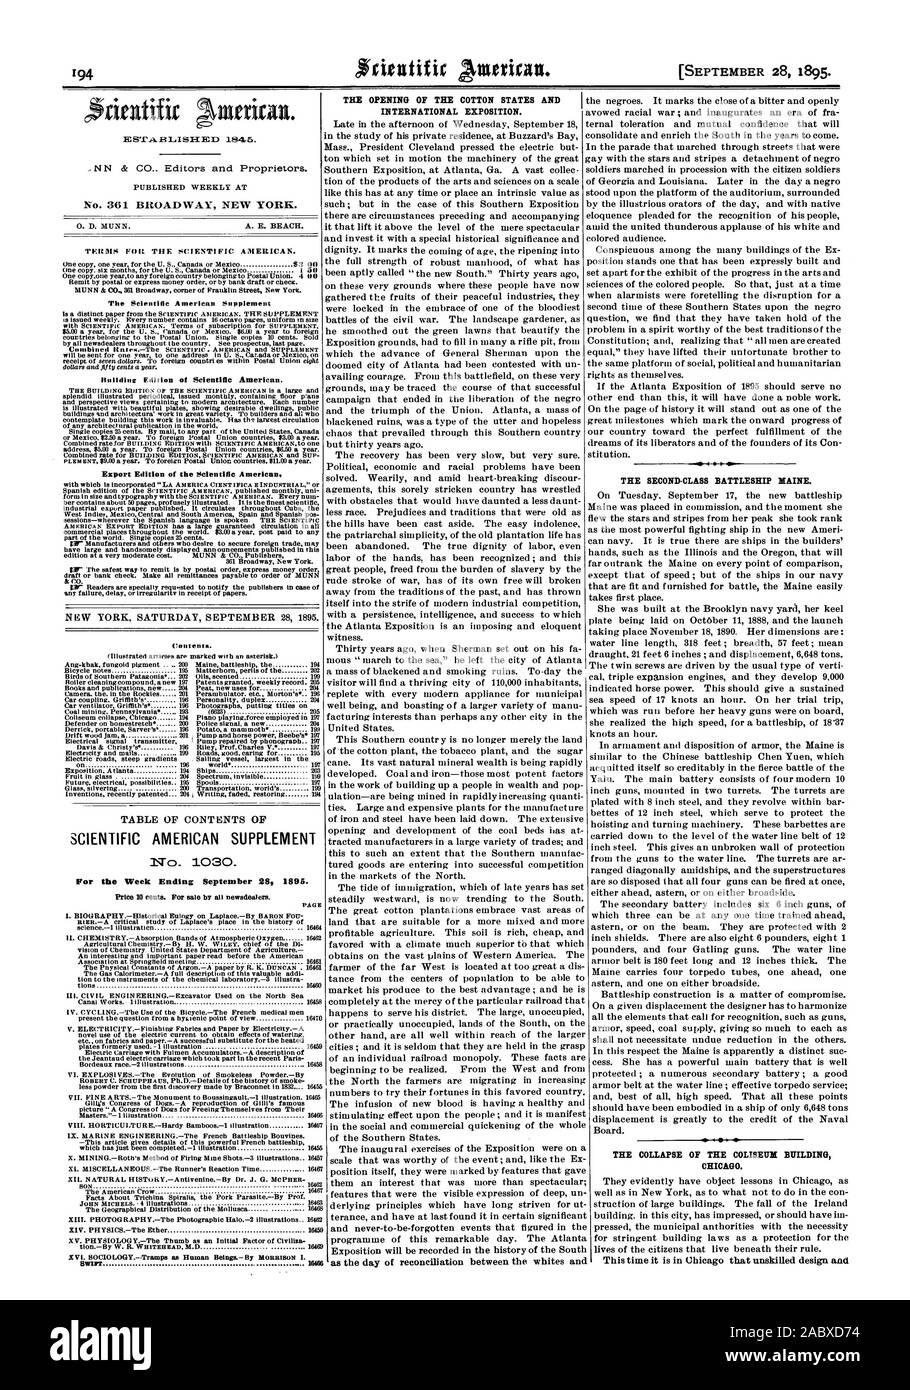 No. 361 BROADWAY NEW YORK. Building Edition of Scientific American. Export Edition of the Scientific American TABLE OF CONTENTS OF SCIENTIFIC AMERICAN SUPPLEMENT No  1030 For the Week Ending September 282 1895. Price 10 Cents. For sale by all newsdealer. PAGE 'Warr 16016 THE OPENING OF THE COTTON STATES AND INTERNATIONAL EXPOSITION. as the day of reconciliation between the whites and THE SECOND-CLASS BATTLESHIP MAINE. THE COLLAPSE OF THE COLISEUM BUILDING CHICAGO. This time it is in Chicago that unskilled design and, 1895-09-28 Stock Photo